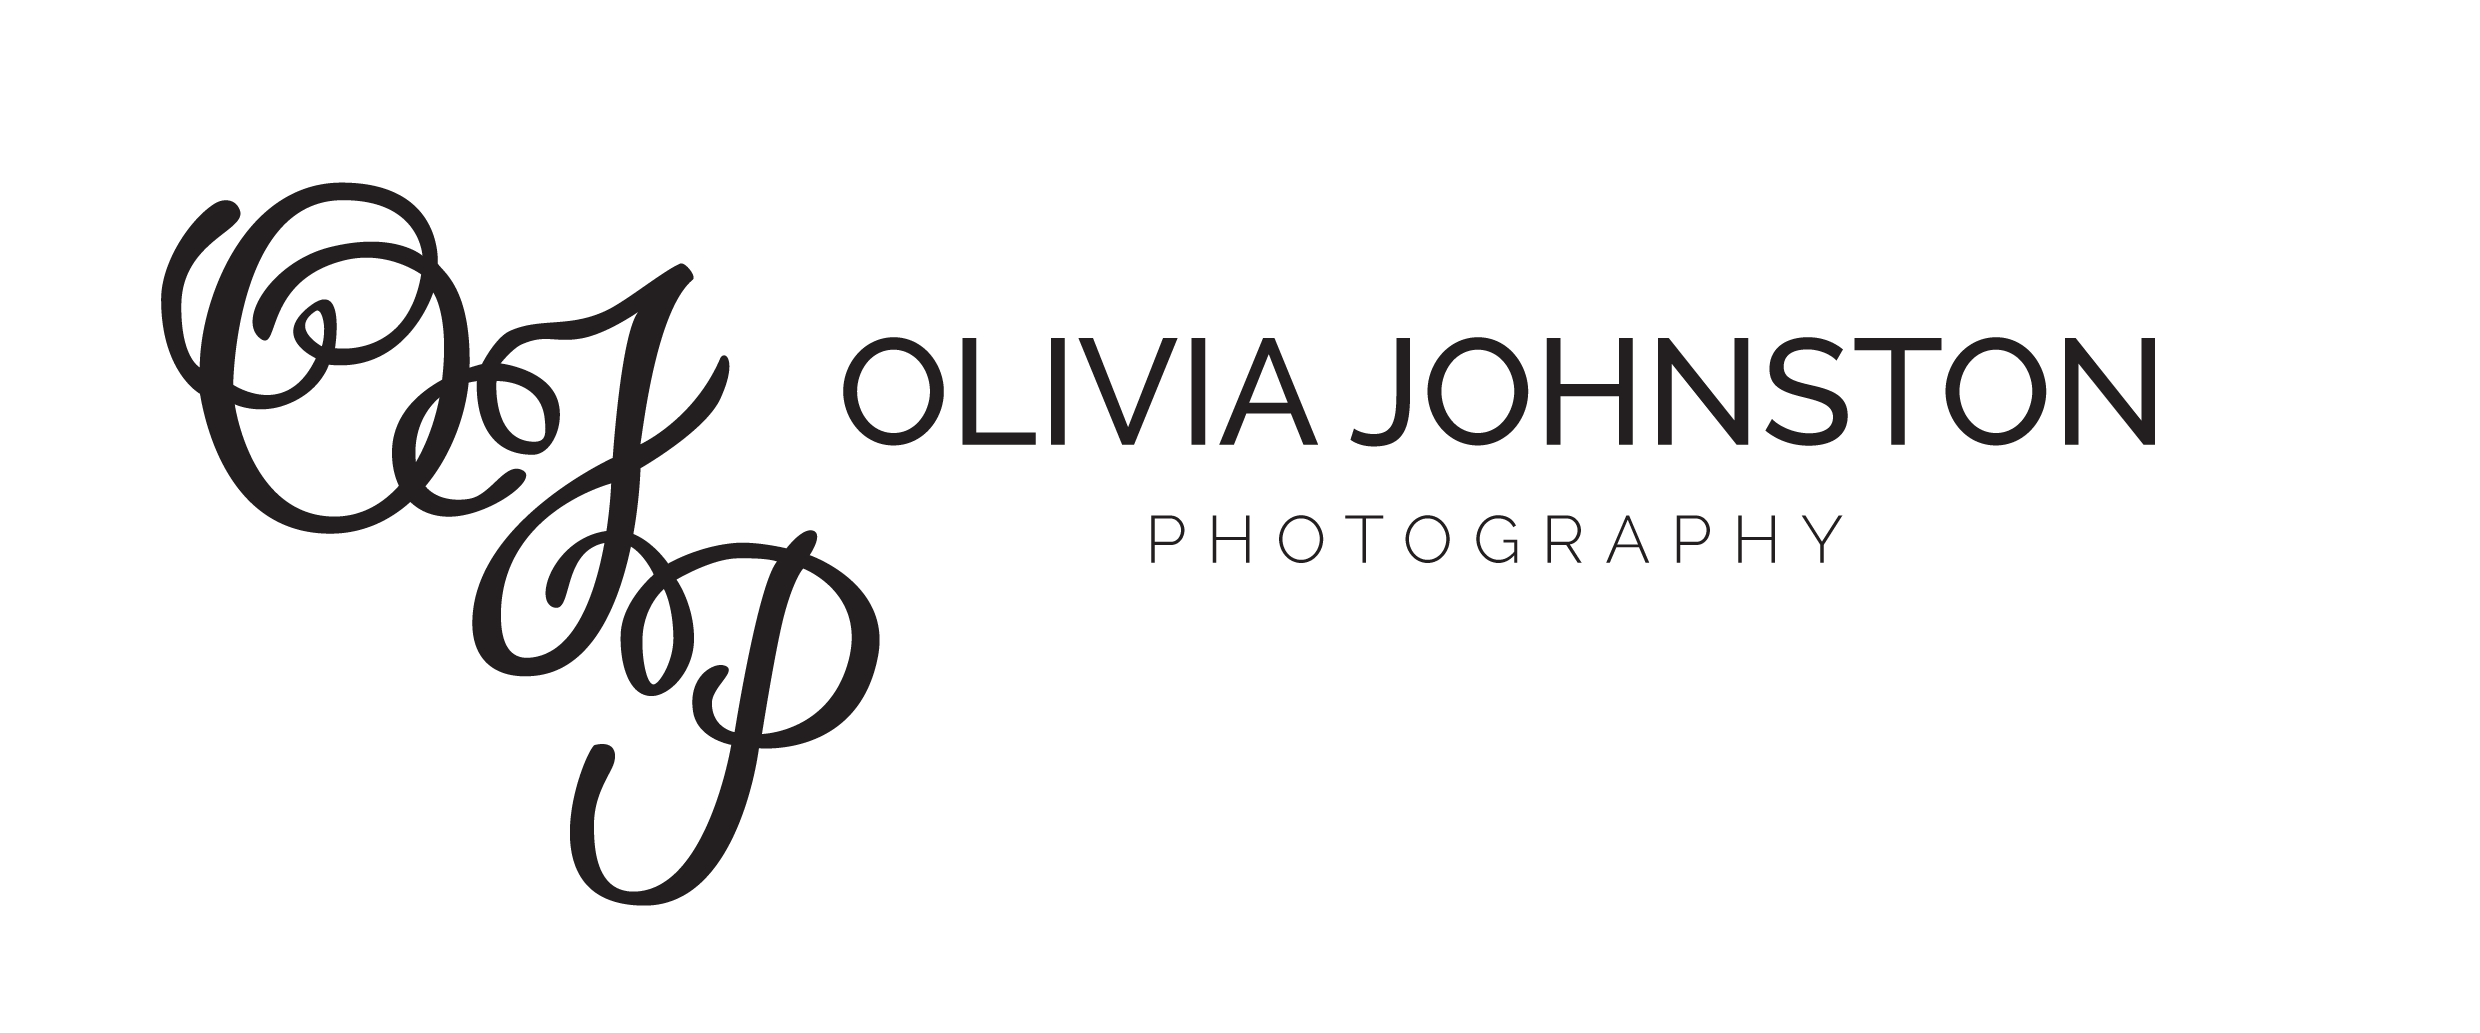 Olivia Johnston Photography, Architectural, Commercial and Music Photographer.